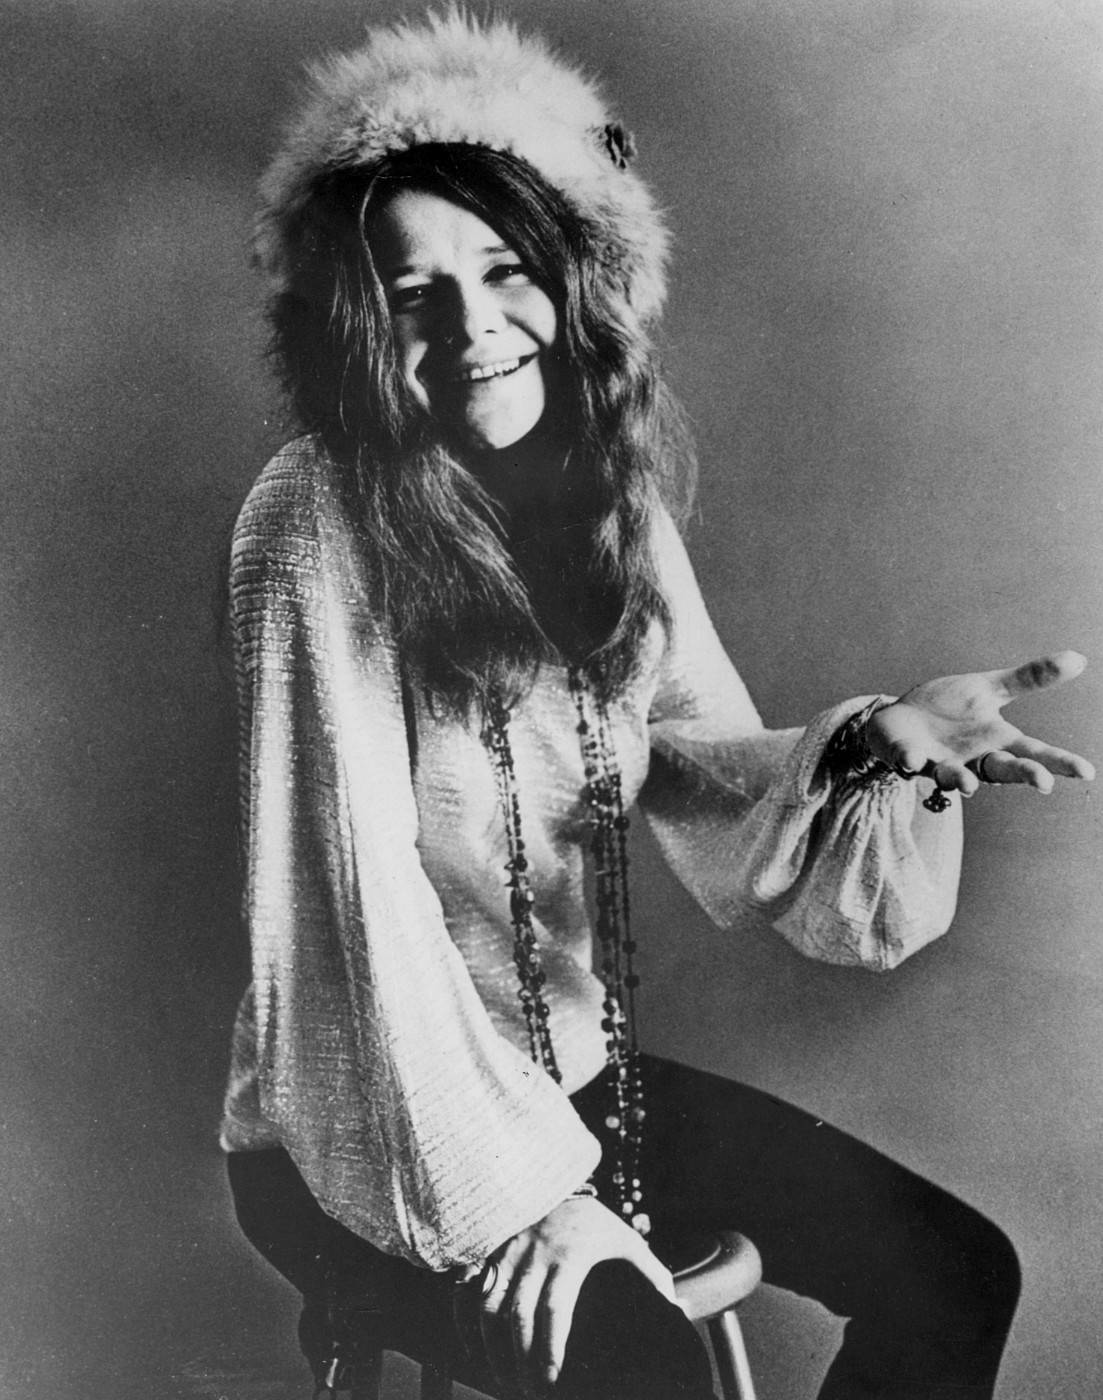 Janis Joplin seated 1970 - https://commons.wikimedia.org/wiki/File:Janis_Joplin_seated_1970.JPG